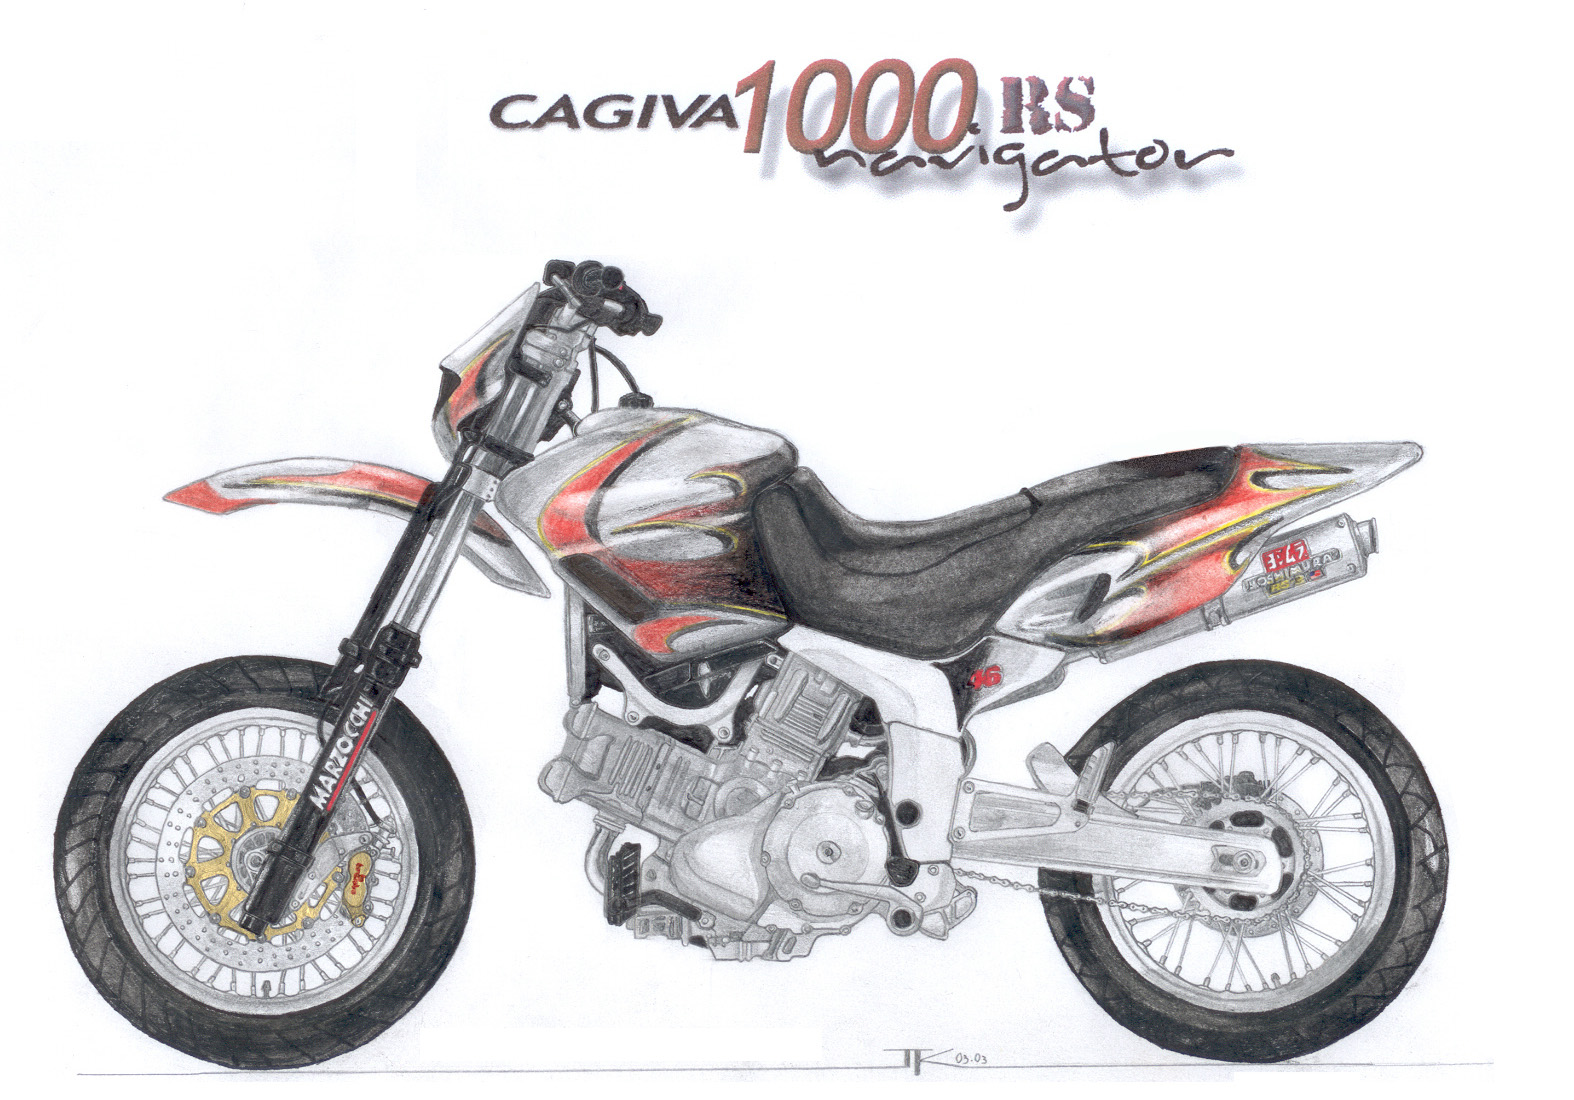 Cagiva Navigator 1000 2006 images #67711